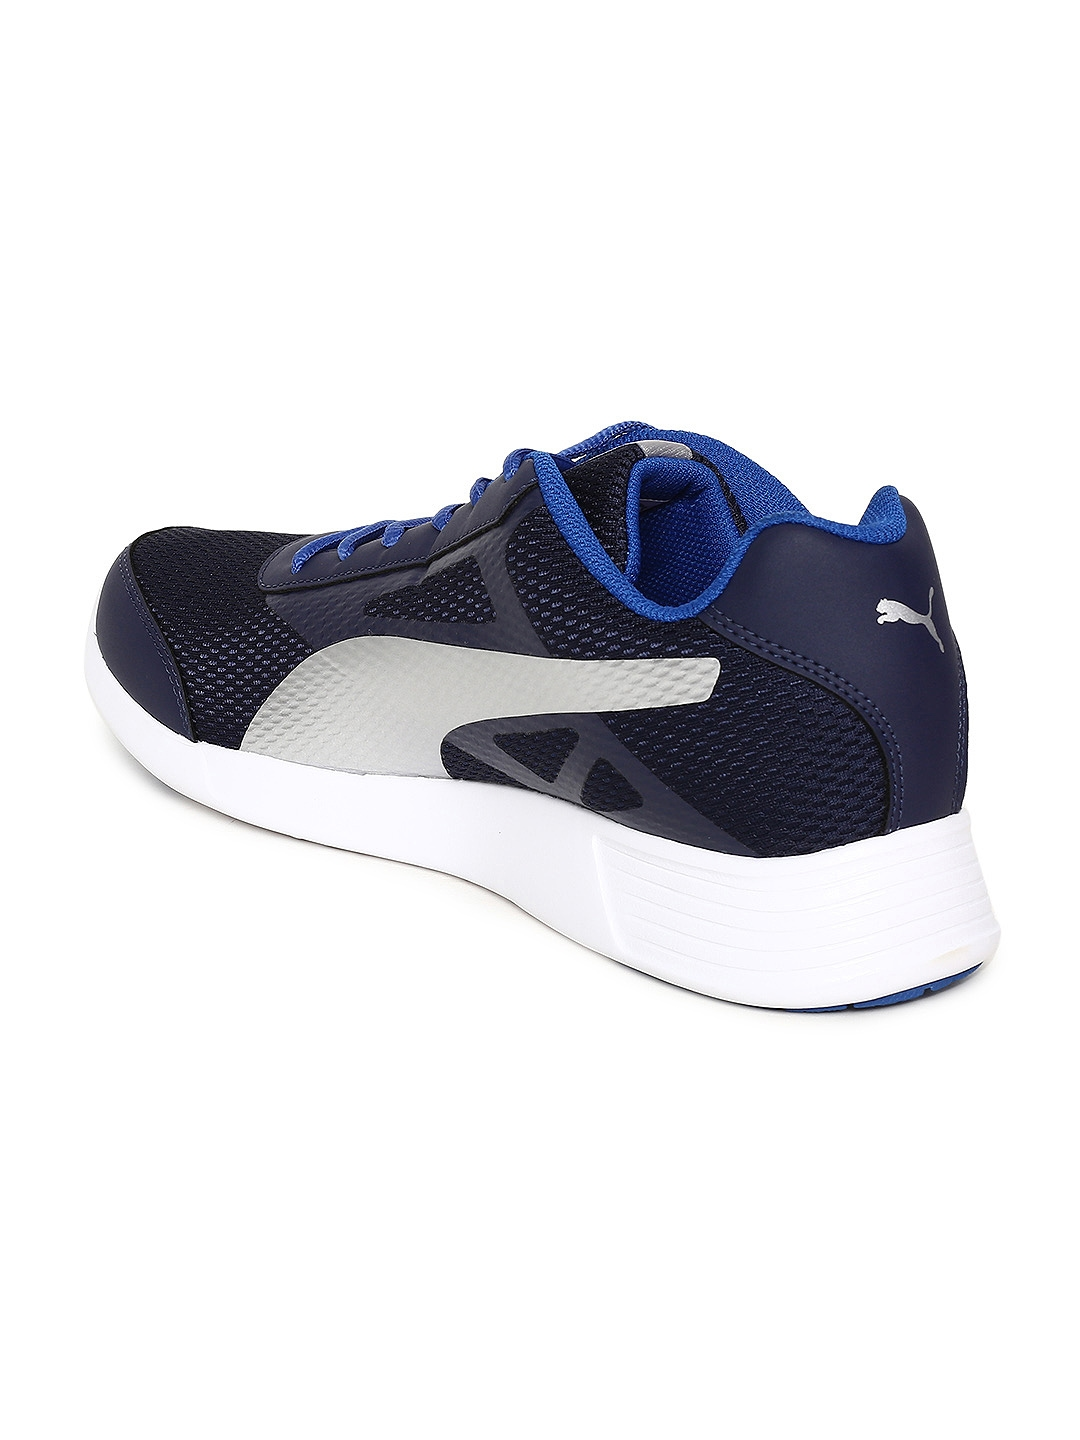 a70163007dcf Buy Puma Men Navy Blue Trenzo IDP Training Shoes - Sports Shoes for ...